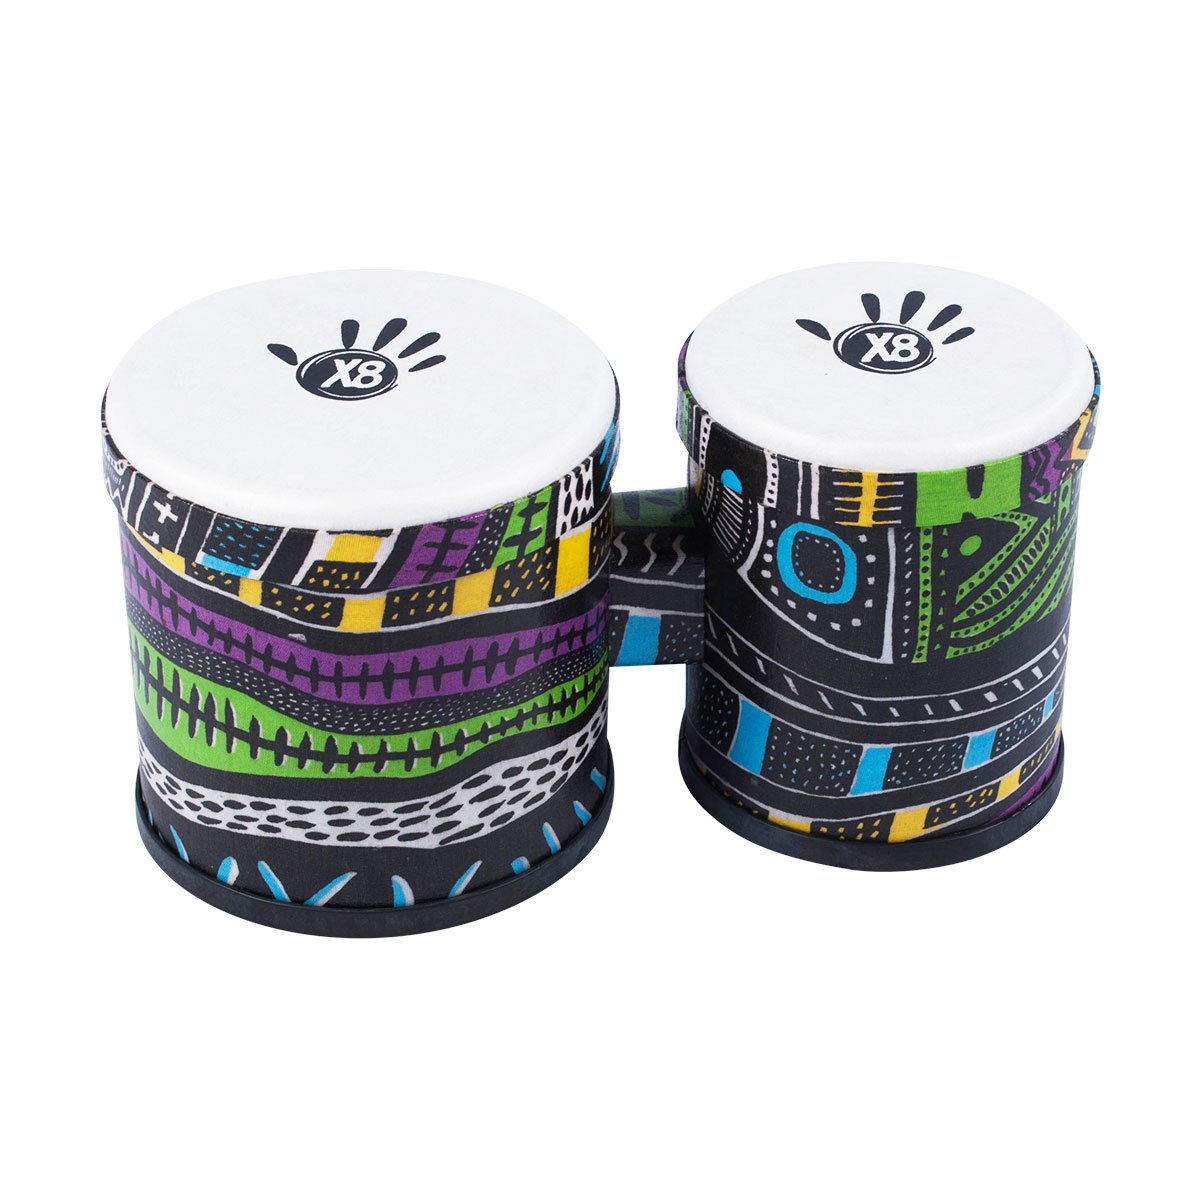 X8 Drums Island Kids Bongos by X8 Drums